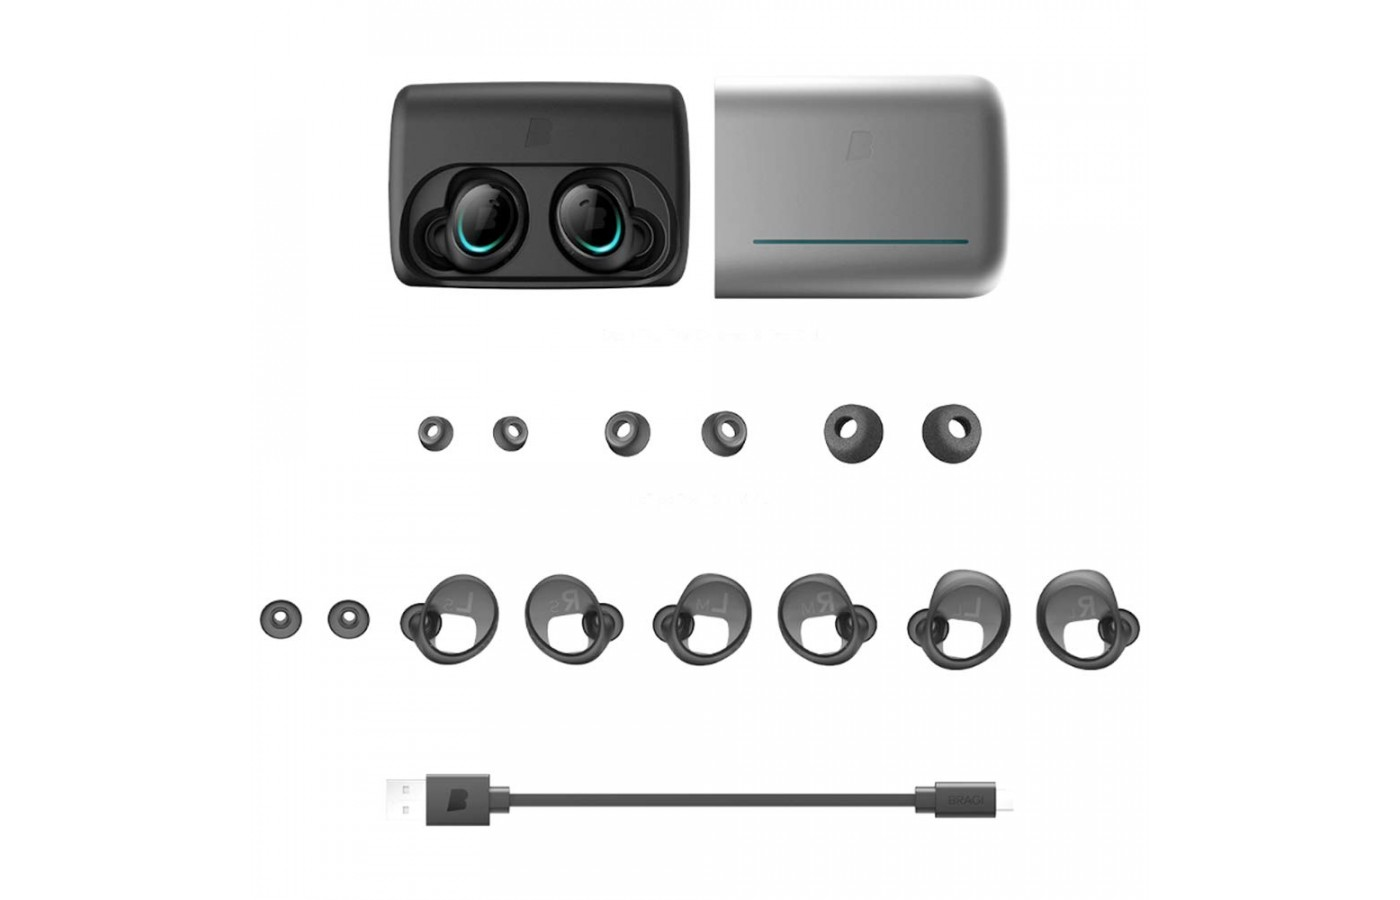 Bragi The Dash Pro accessories